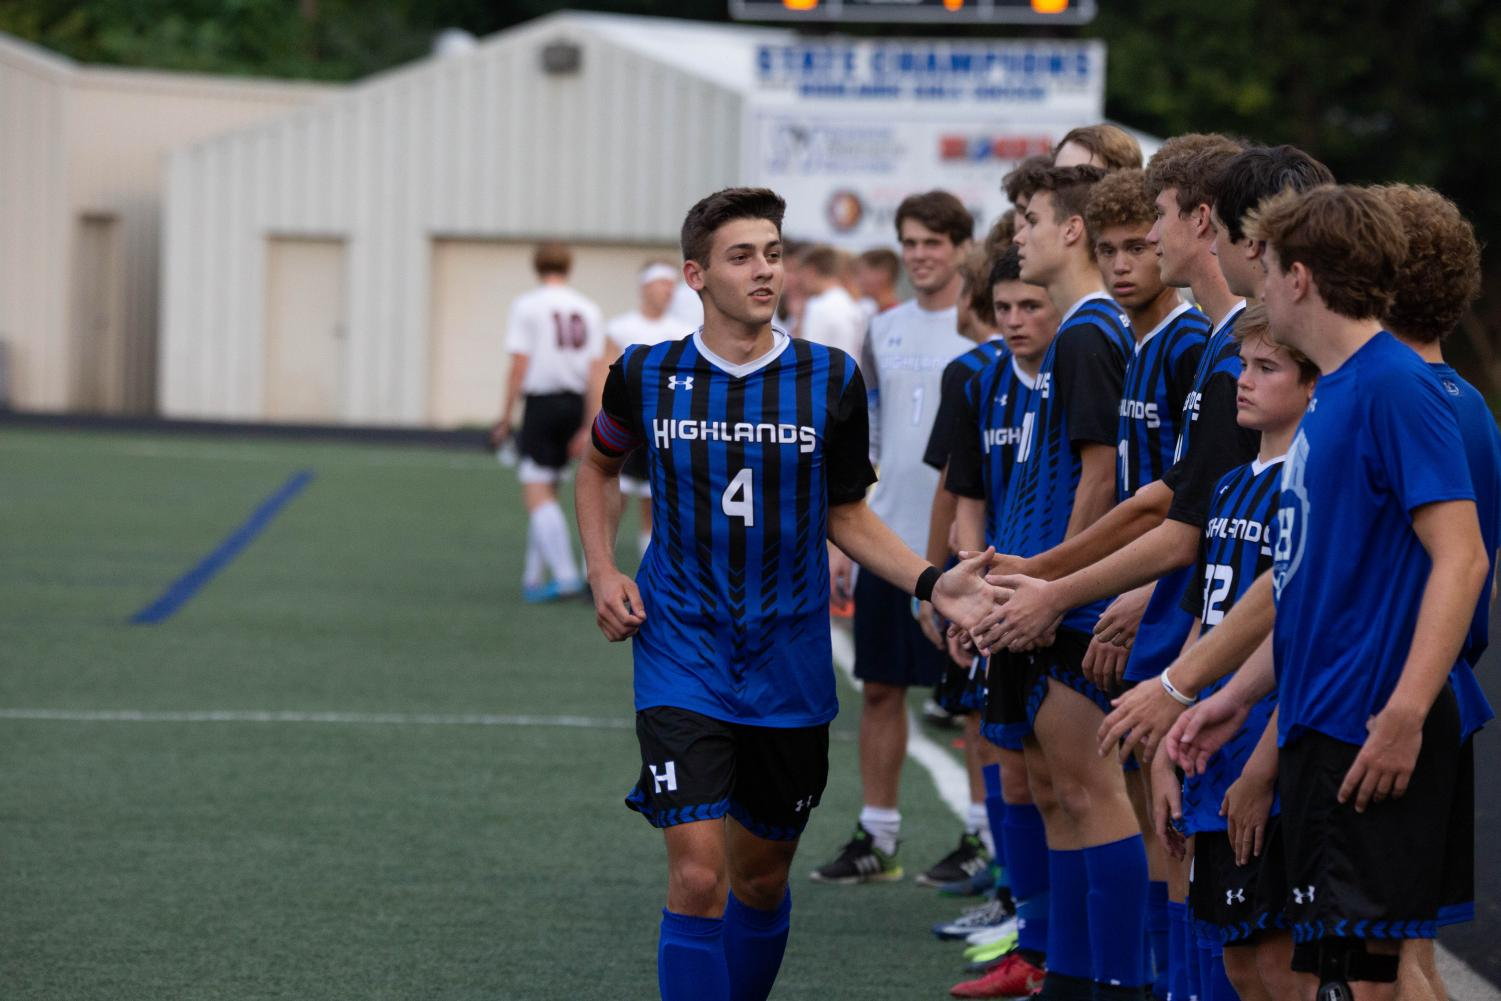 Senior Alex Ford high-fiving the soccer team before a game.